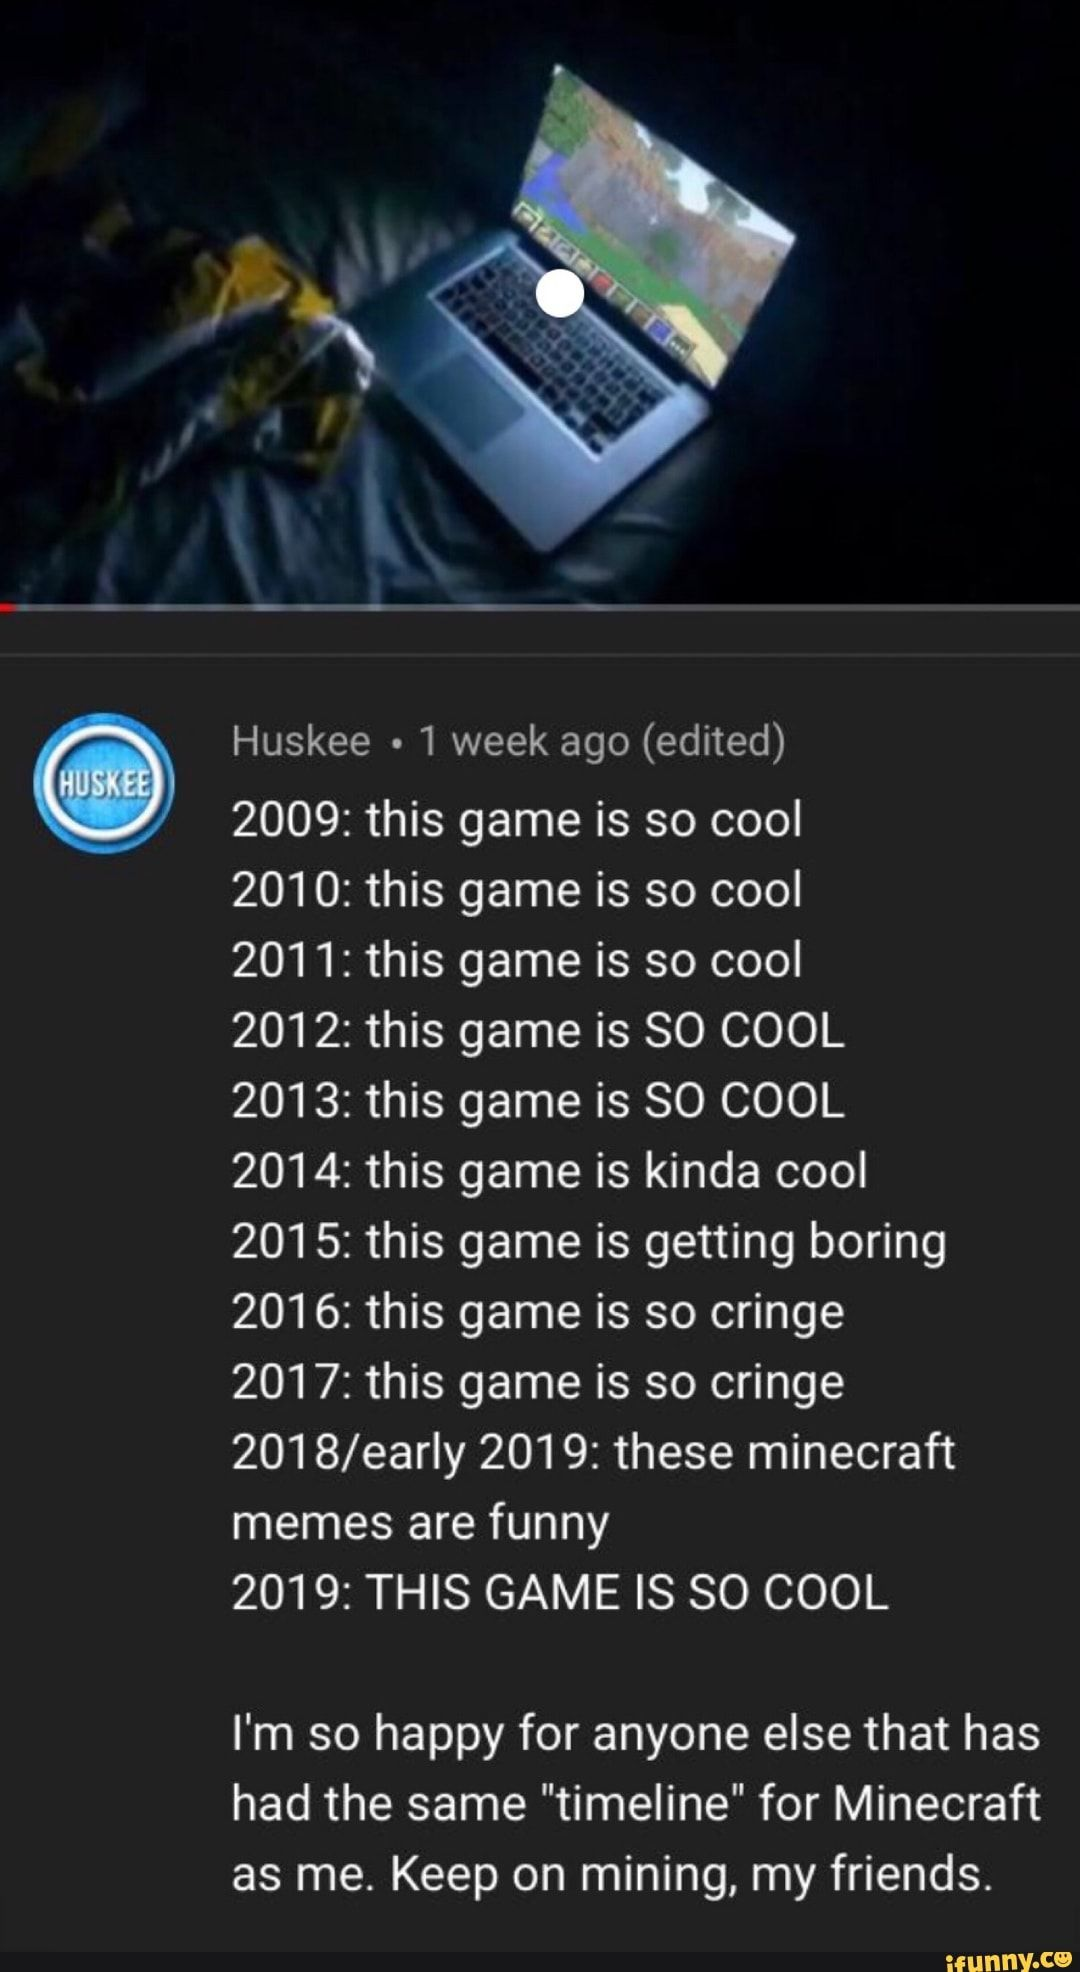 Huskee Ago Edited 2009 This Game Is So Cool 2010 This Game Is So Cool 2011 This Game Is So Cool 2012 This Game Is 80 Cool 2013 This Game Is So